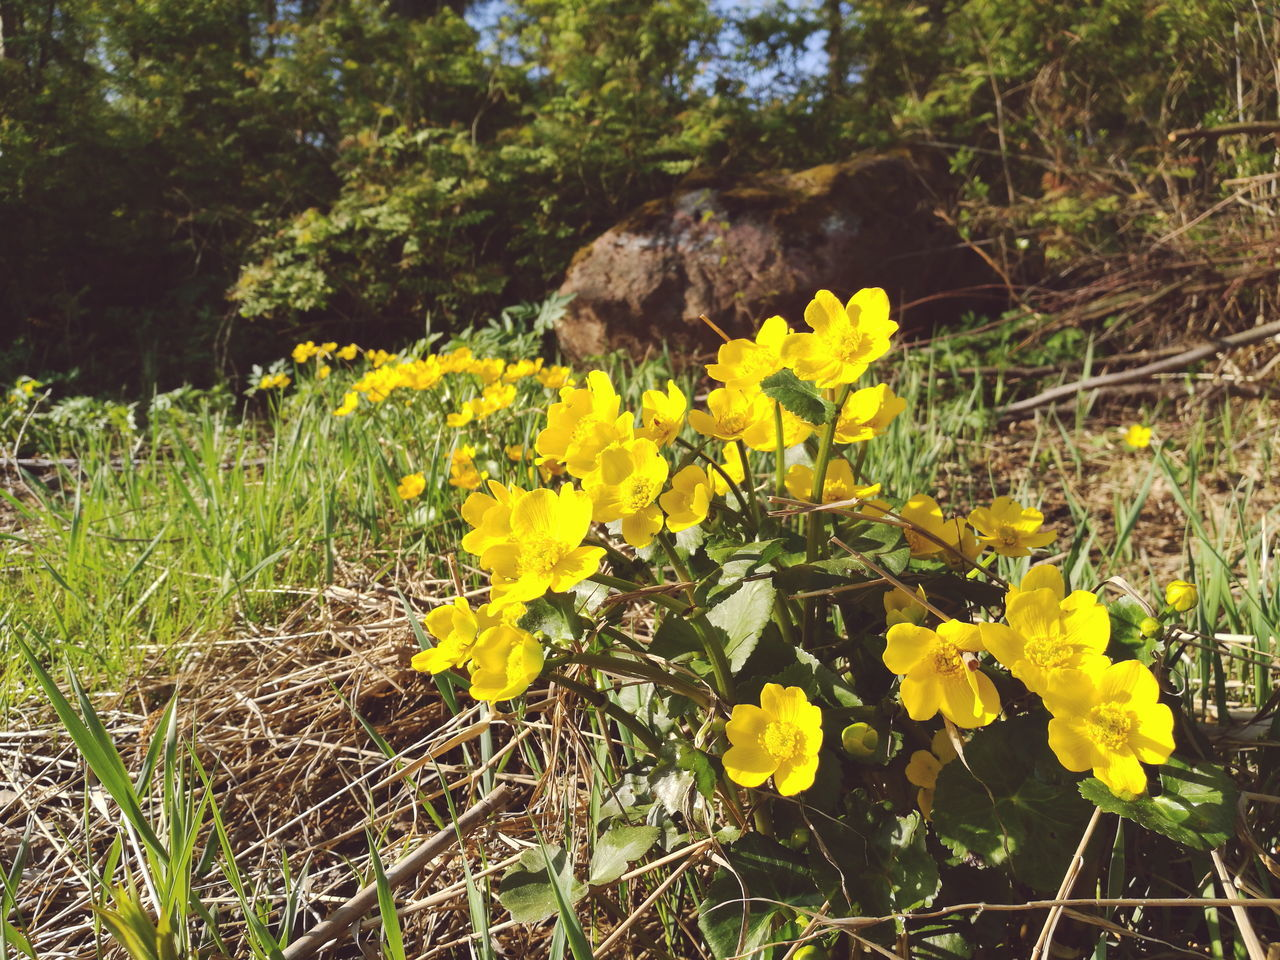 Marsh Marigold Kingcup Caltha Palustris Nature Photography Mobile Photography HuaweiP9 Huawei The Great Outdoors - 2016 EyeEm Awards Wildflowers VSCO Vscogood Natures Diversities